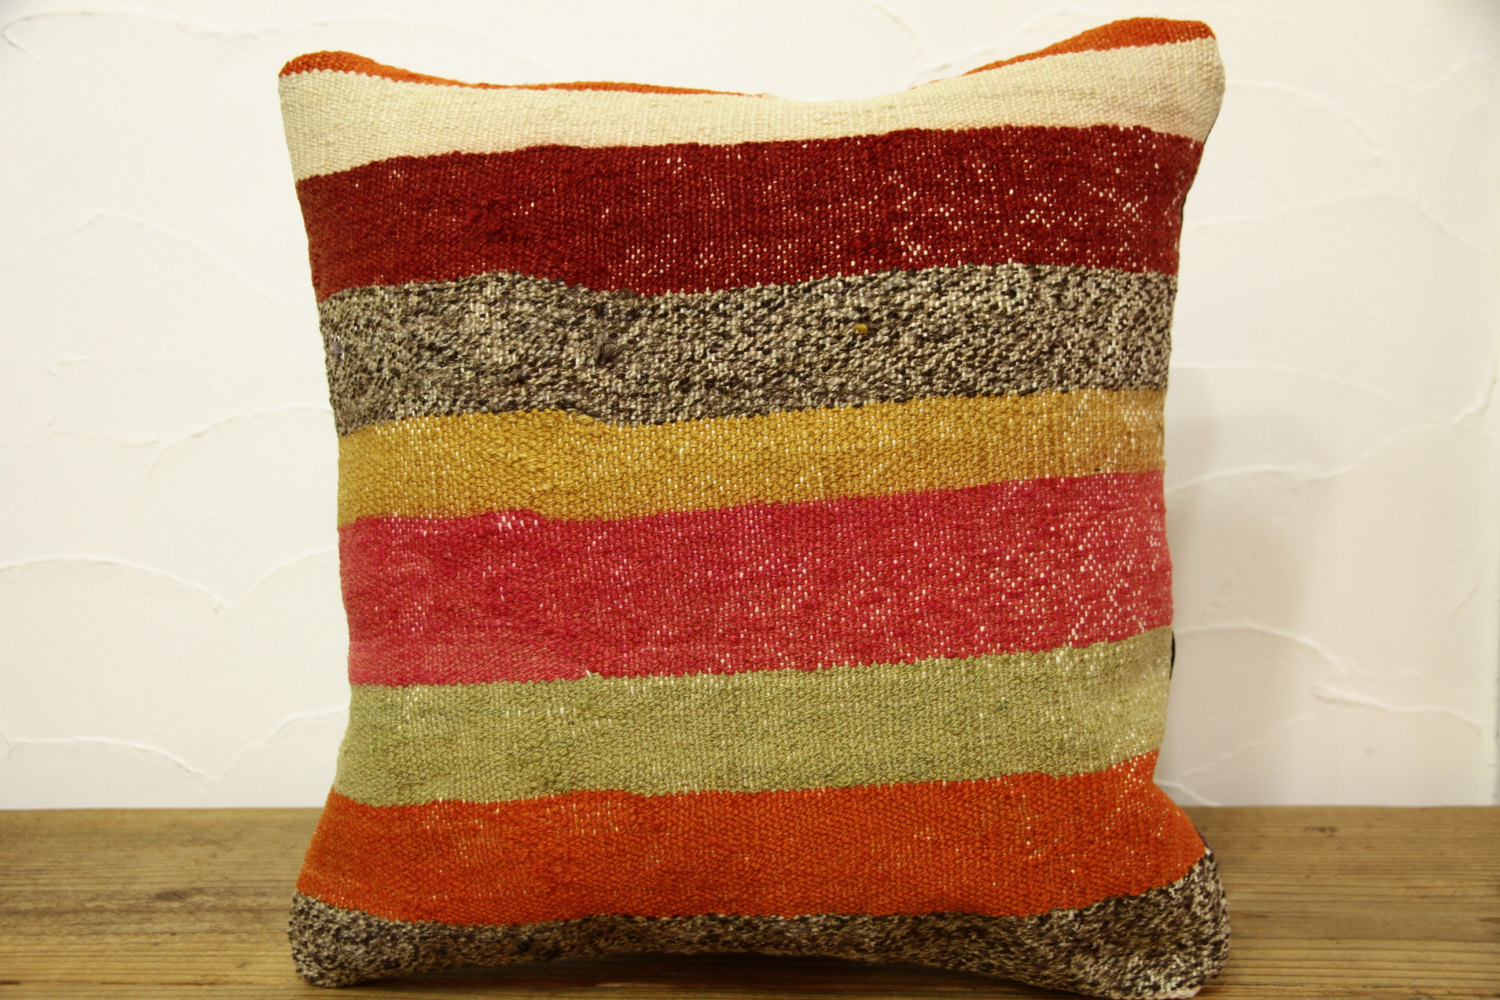 Kilim Pillows |16x16 | Decorative Pillows | 413 | Accent Pillows, Kilim cushion